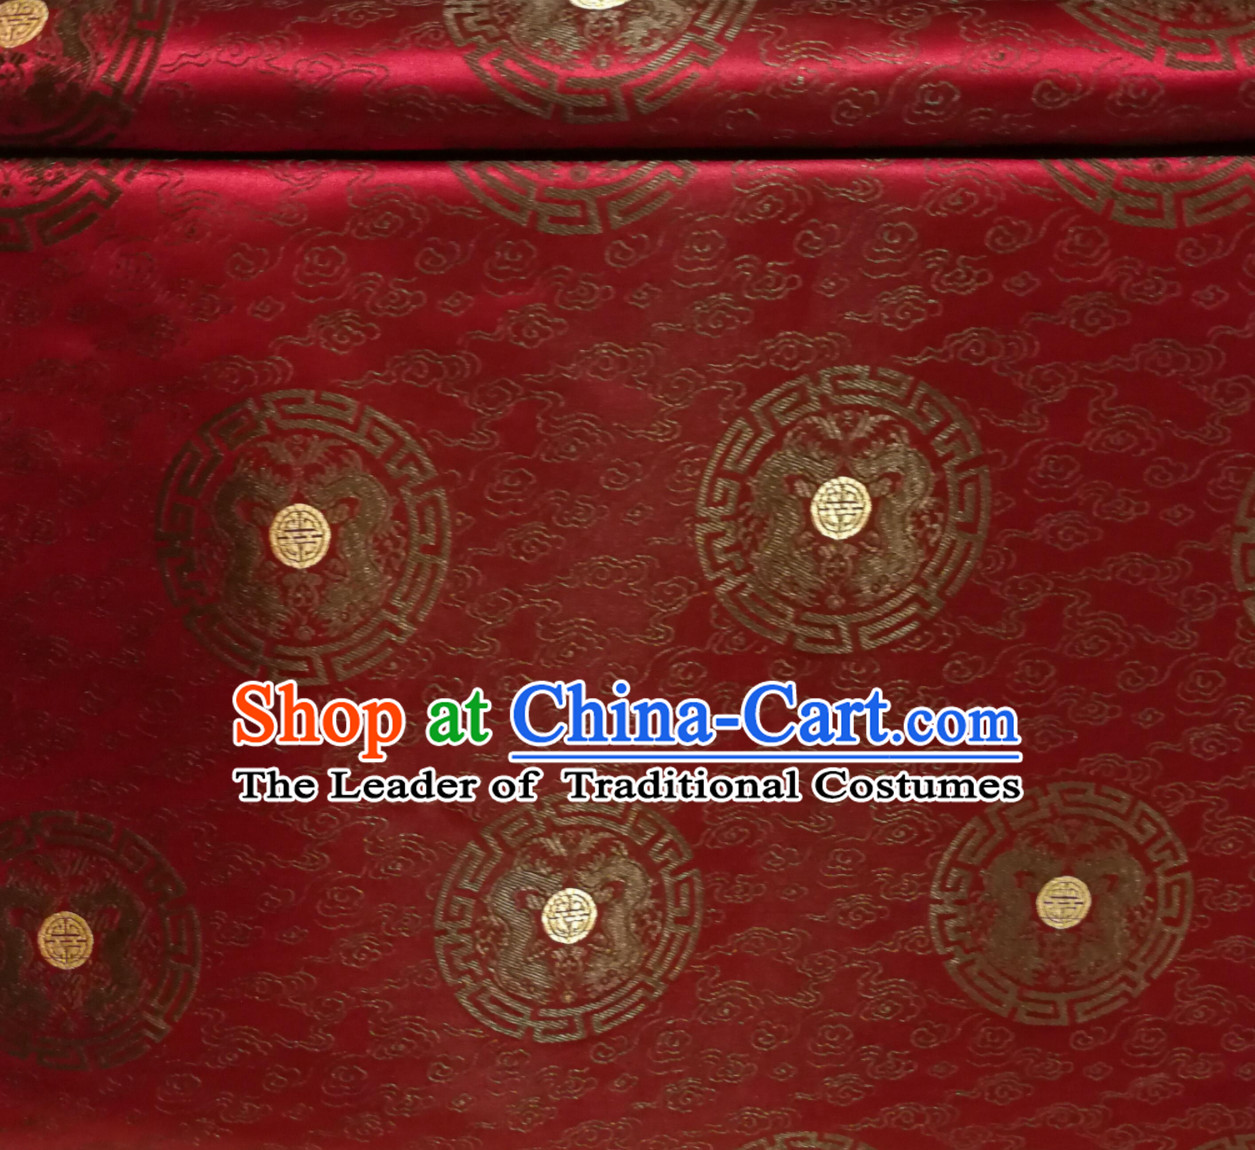 Dark Red Color Chinese Royal Palace Style Traditional Round Dragon Pattern Design Brocade Fabric Silk Fabric Chinese Fabric Asian Material